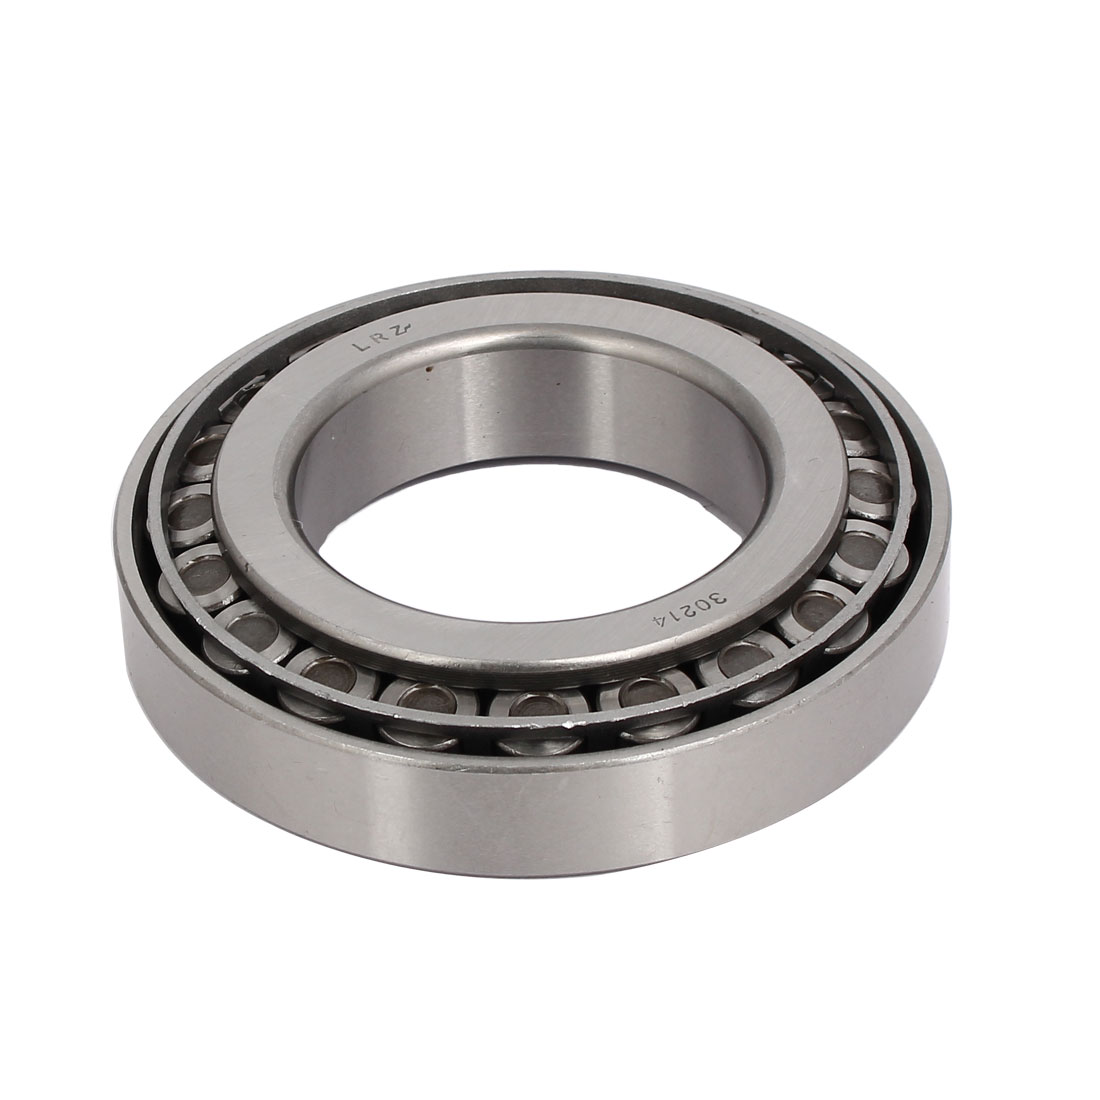 125mmx70mmx28mm 30214 Single Row Tapered Roller Bearing Silver Tone